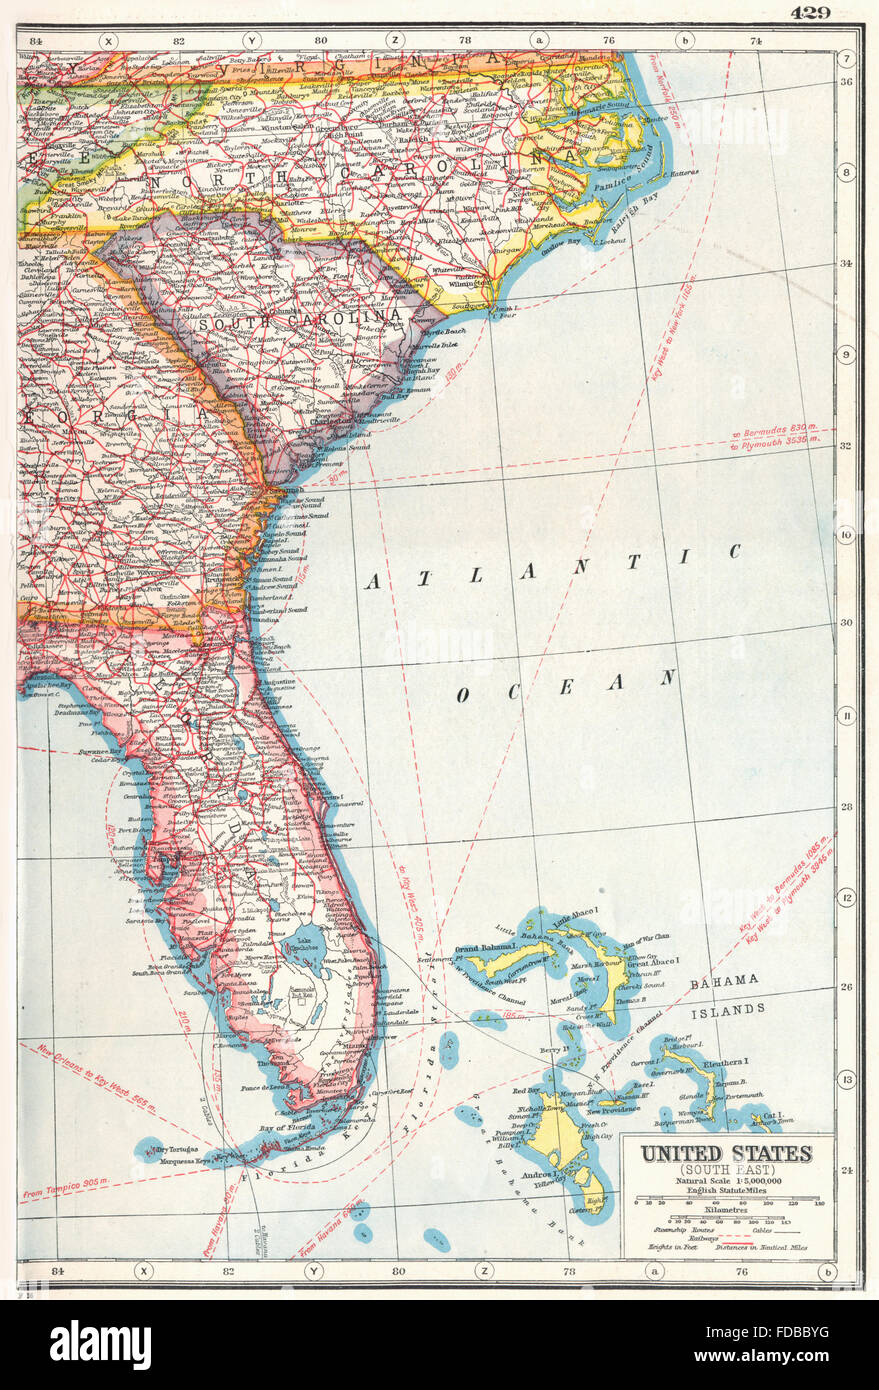 Usa South East Florida North Carolina South Carolina Georgia 1920